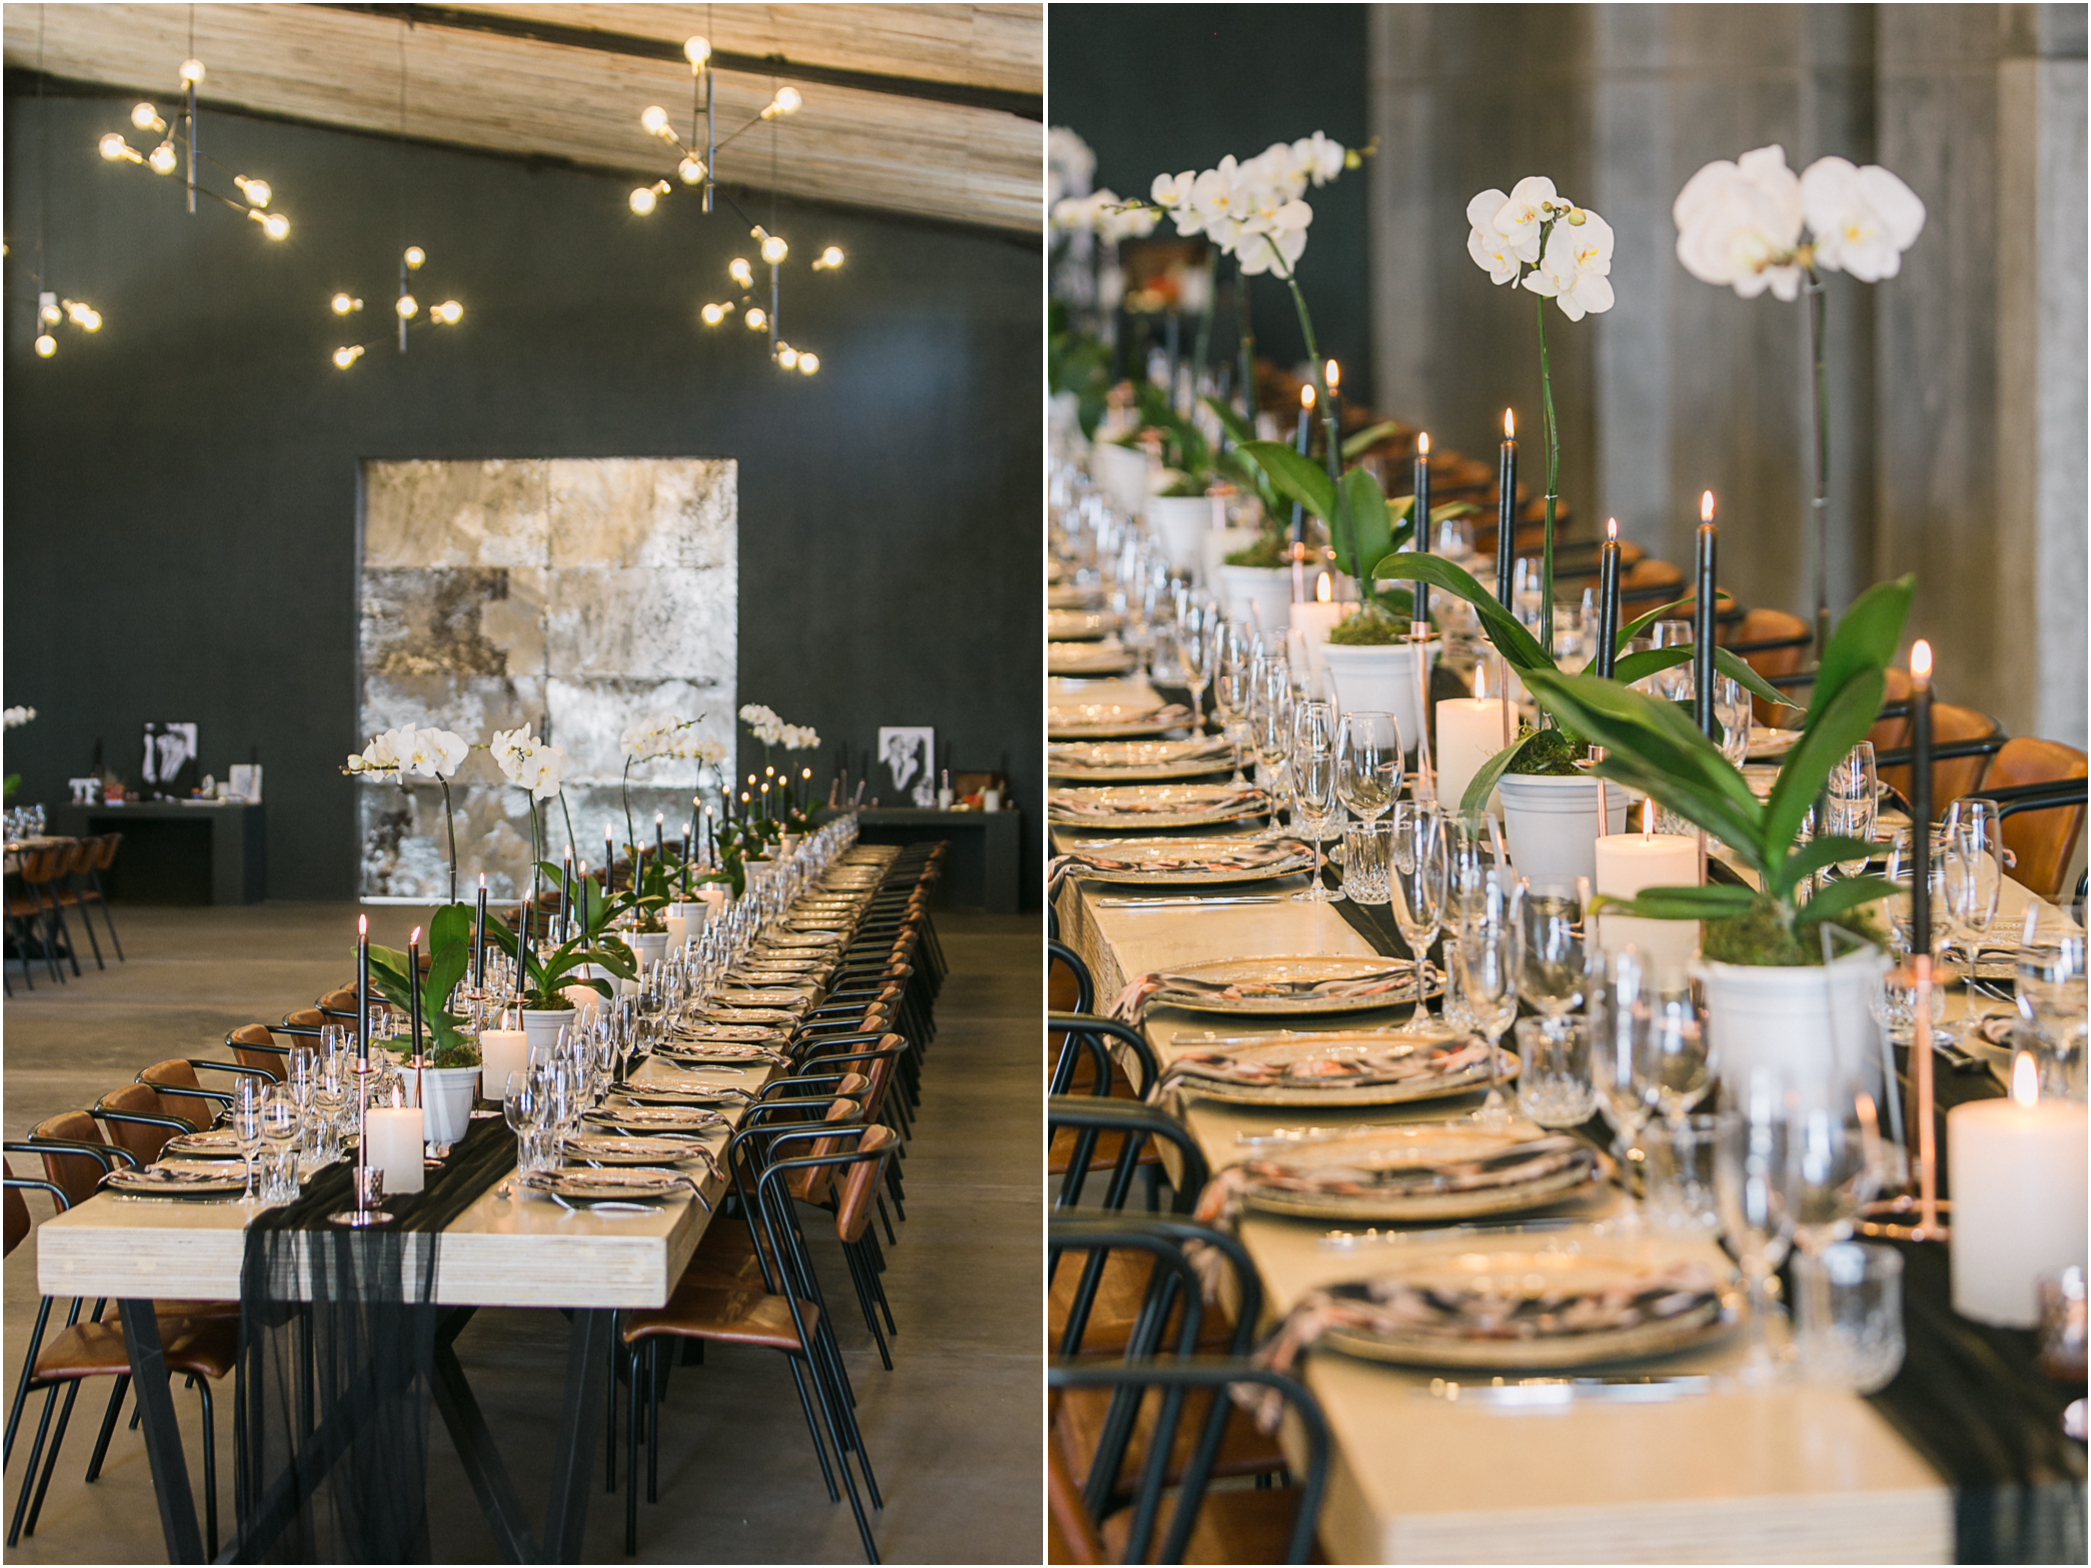 Dust-and-Dreams-Photography_Smitsfield-wedding-venue-tablescape